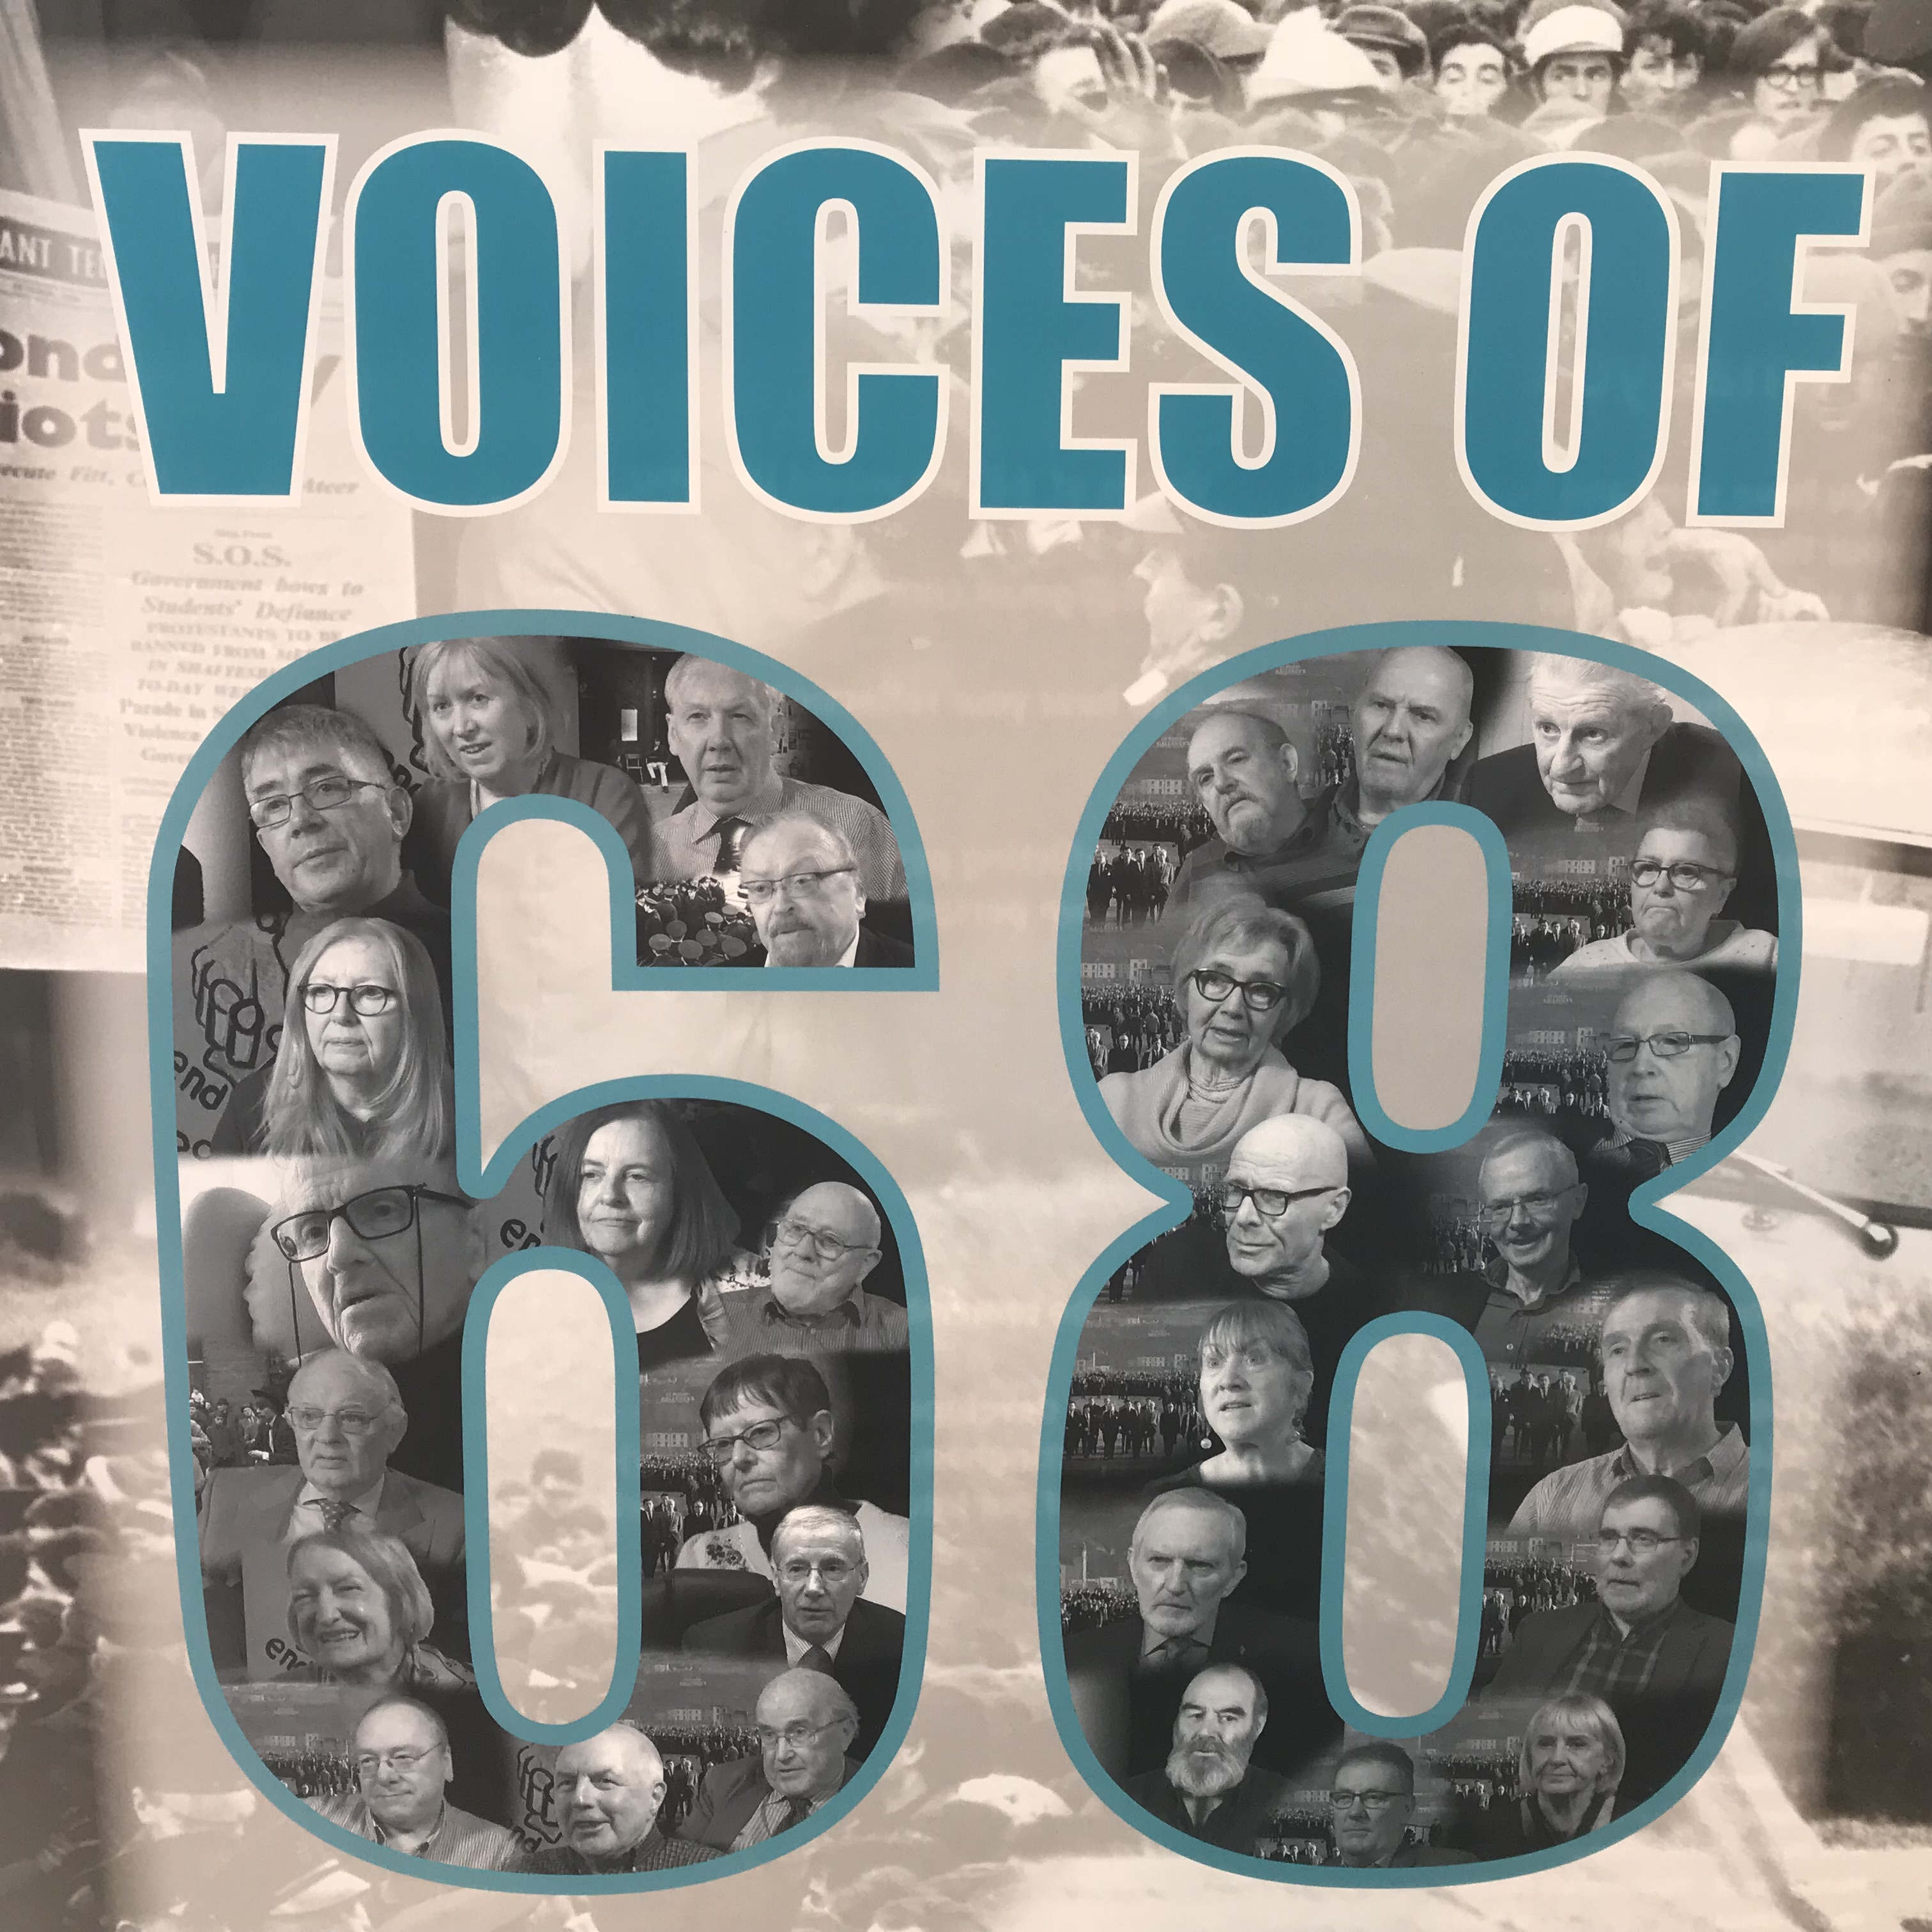 Voices Of '68 Exhibition – Thurles Library, August 2019